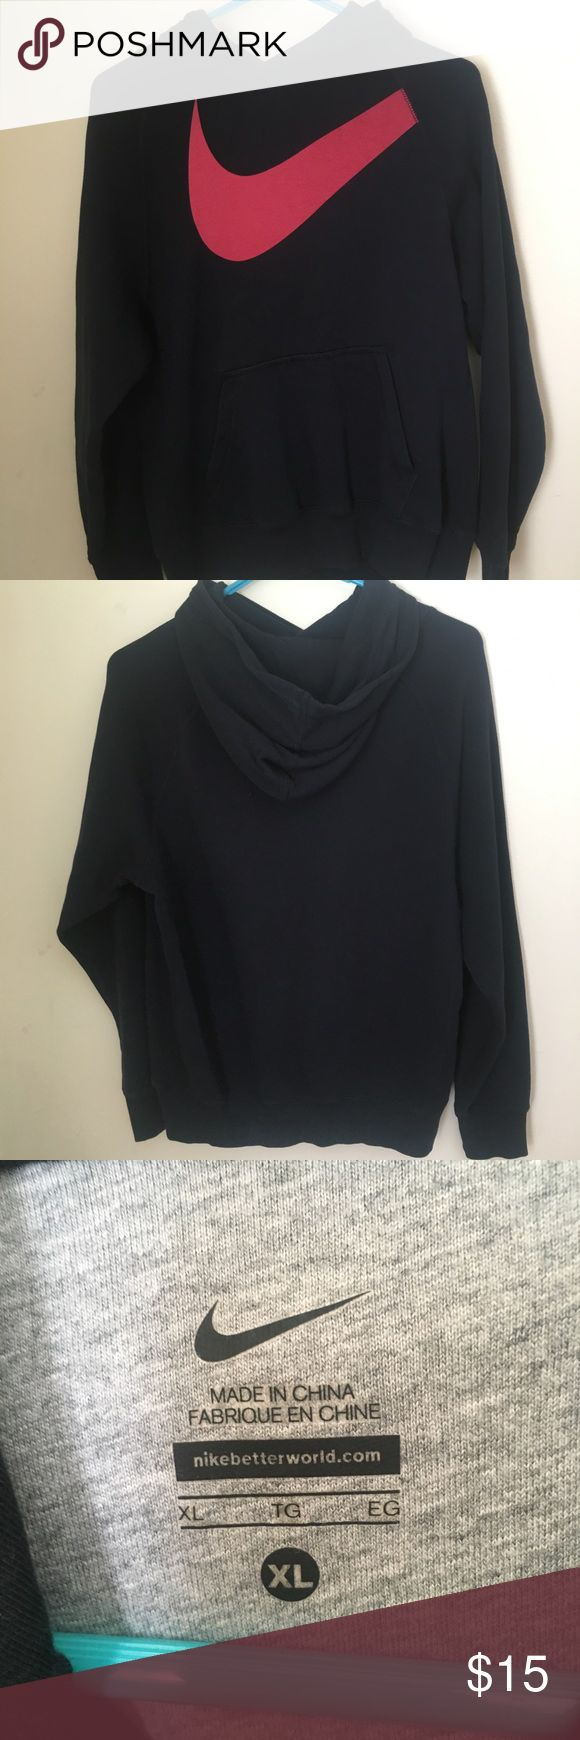 Nike hooded Sweatshirt. Excellent Condition. Black Nike Sweatshirt with red Nike sign. Sweatshirt is a size boys' XL but will also fit up to a small women's size Medium. Perfect condition. No flaws. Comfy casual sweatshirt for fall. Nike Shirts & Tops Sweatshirts & Hoodies